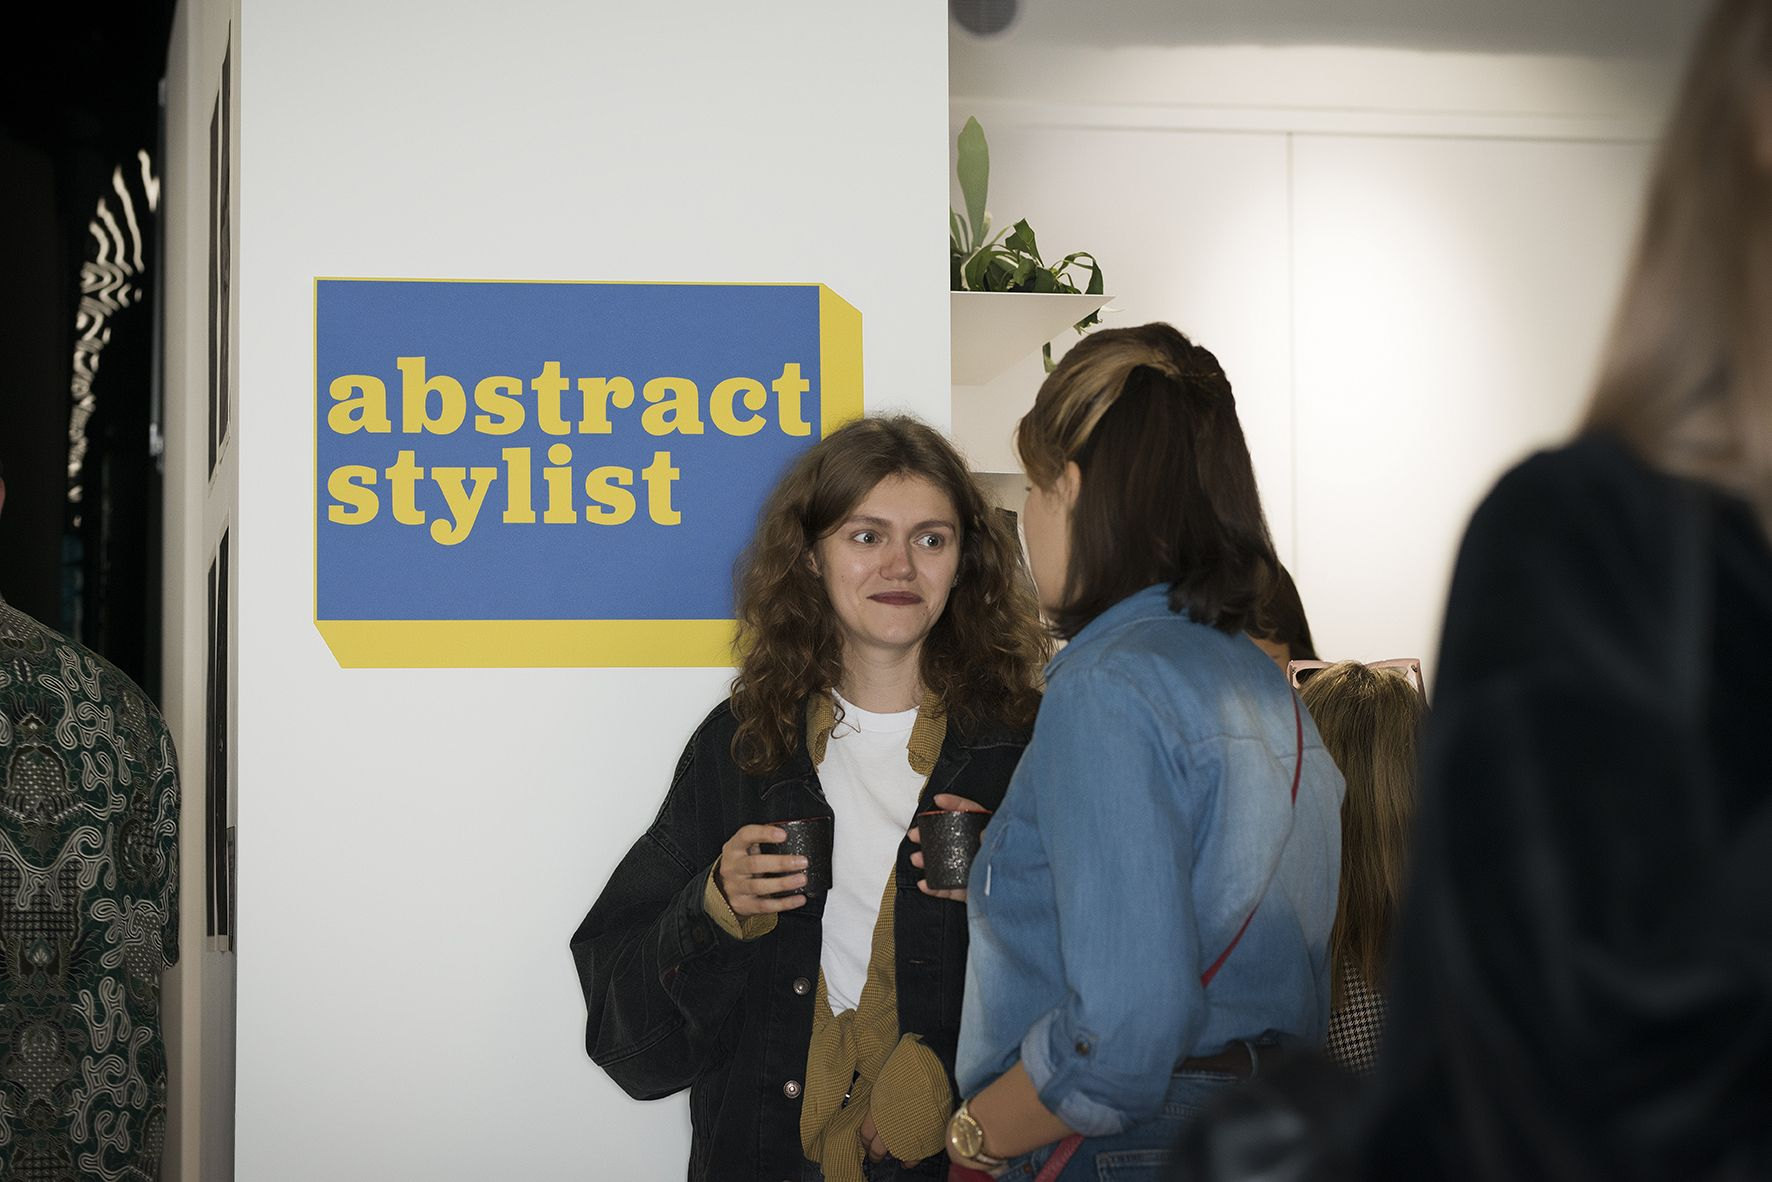 abstractstylist